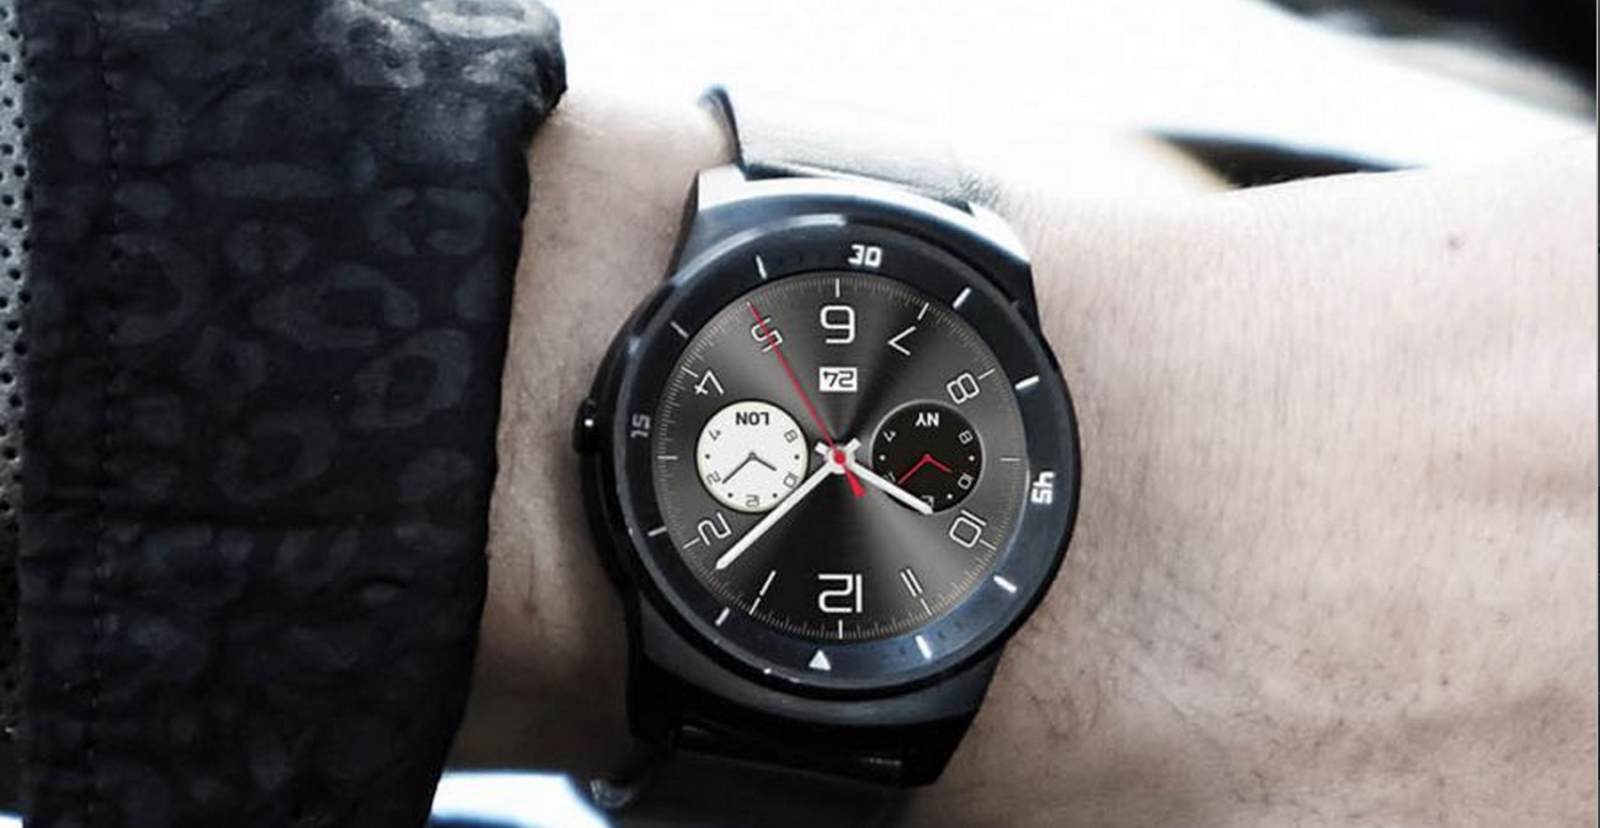 Third LG Smartwatch with SIM-card Slot Expected to be Launched by Verizon in Q4 2014